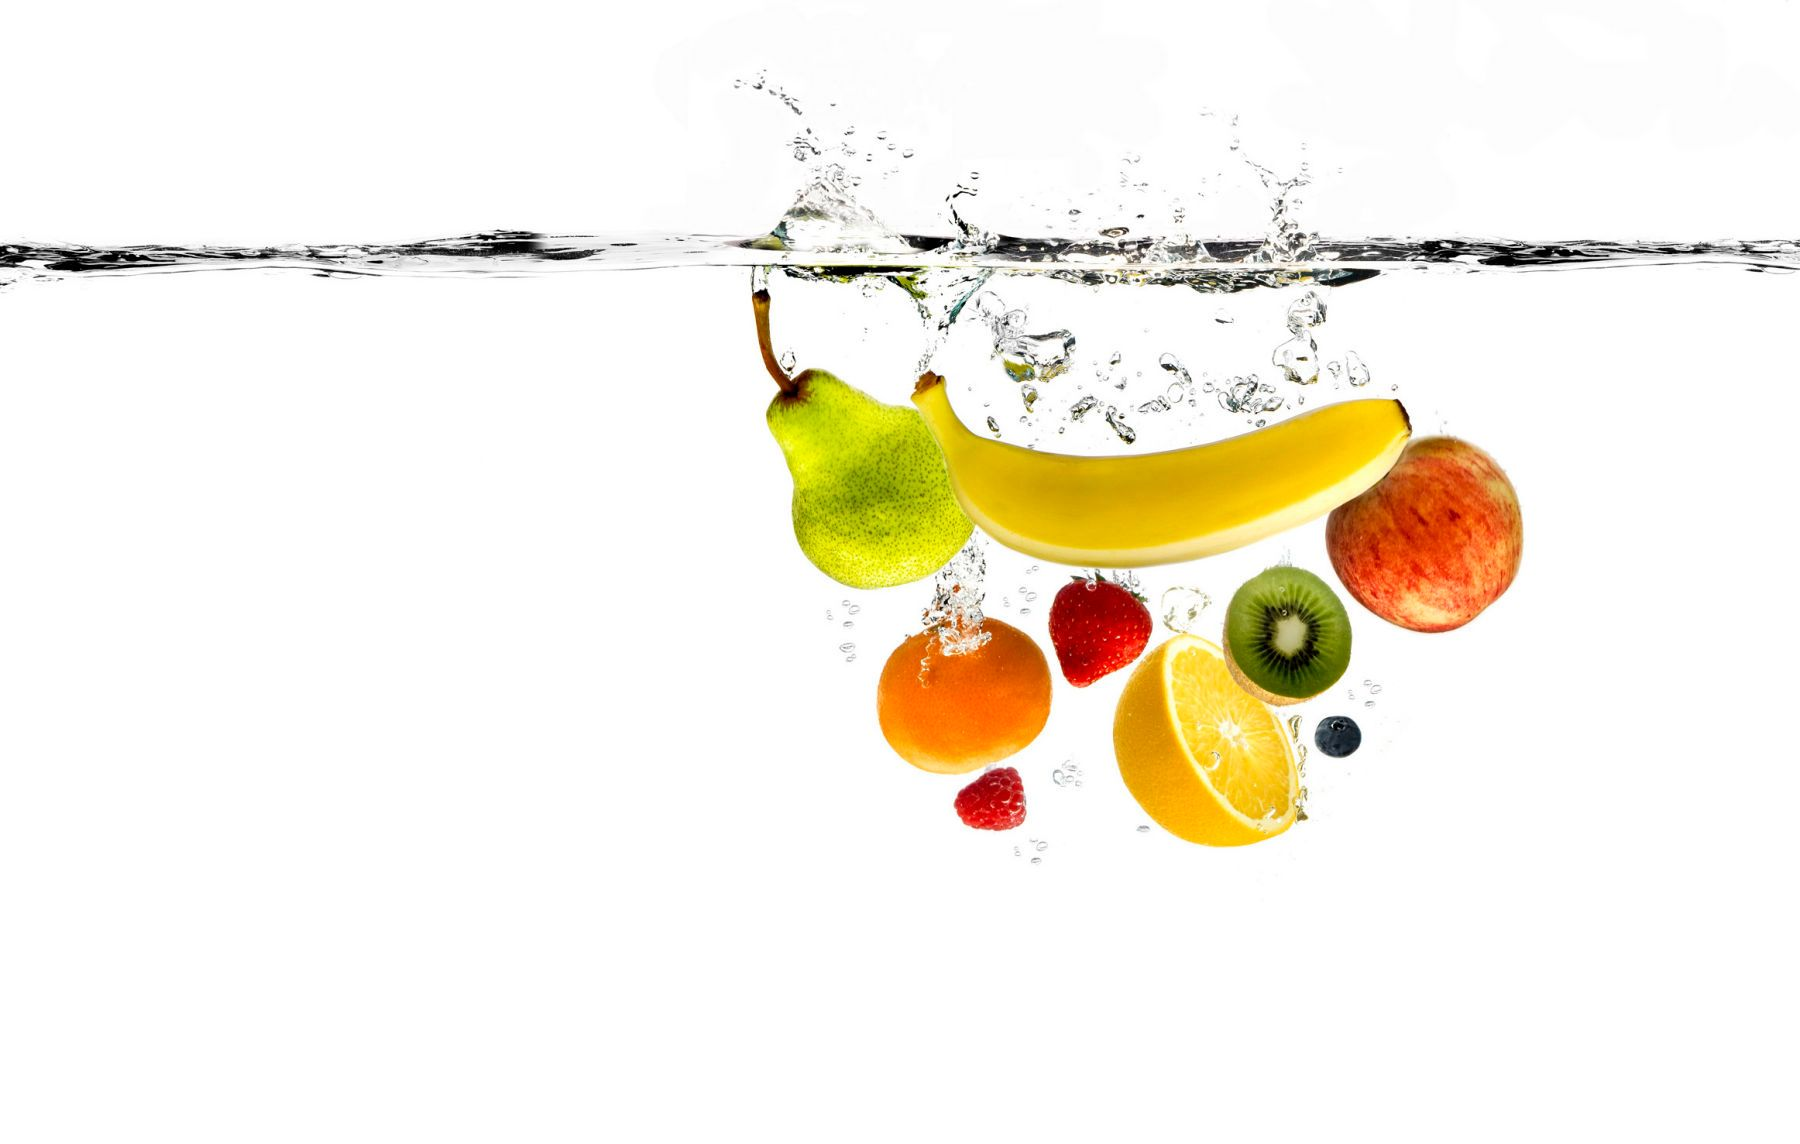 1centra_fruit_under_water___mixed_fruits.jpg